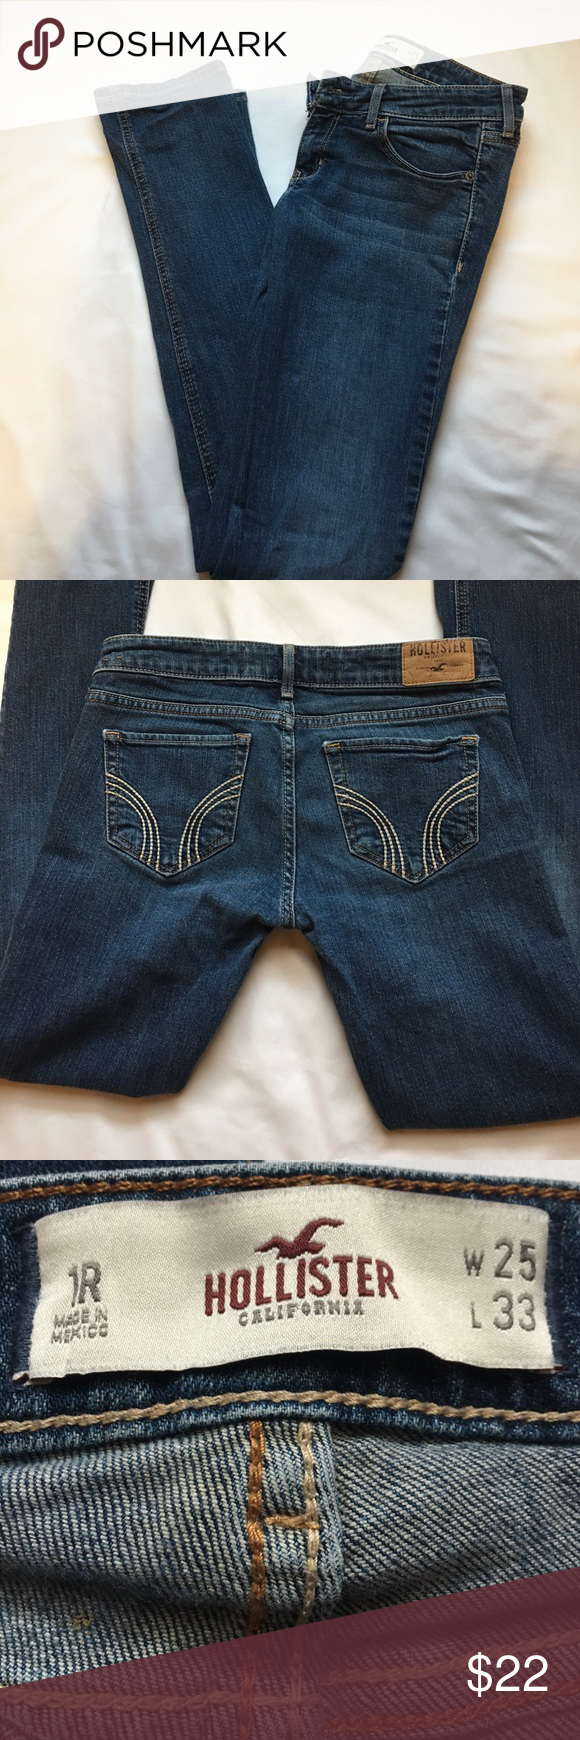 """Hollister Skinny Jeans👖 Hollister Skinny Jeans; W 25"""" L 33""""; Smoke free and Pet Free home; no damage to garment Hollister Jeans Skinny"""